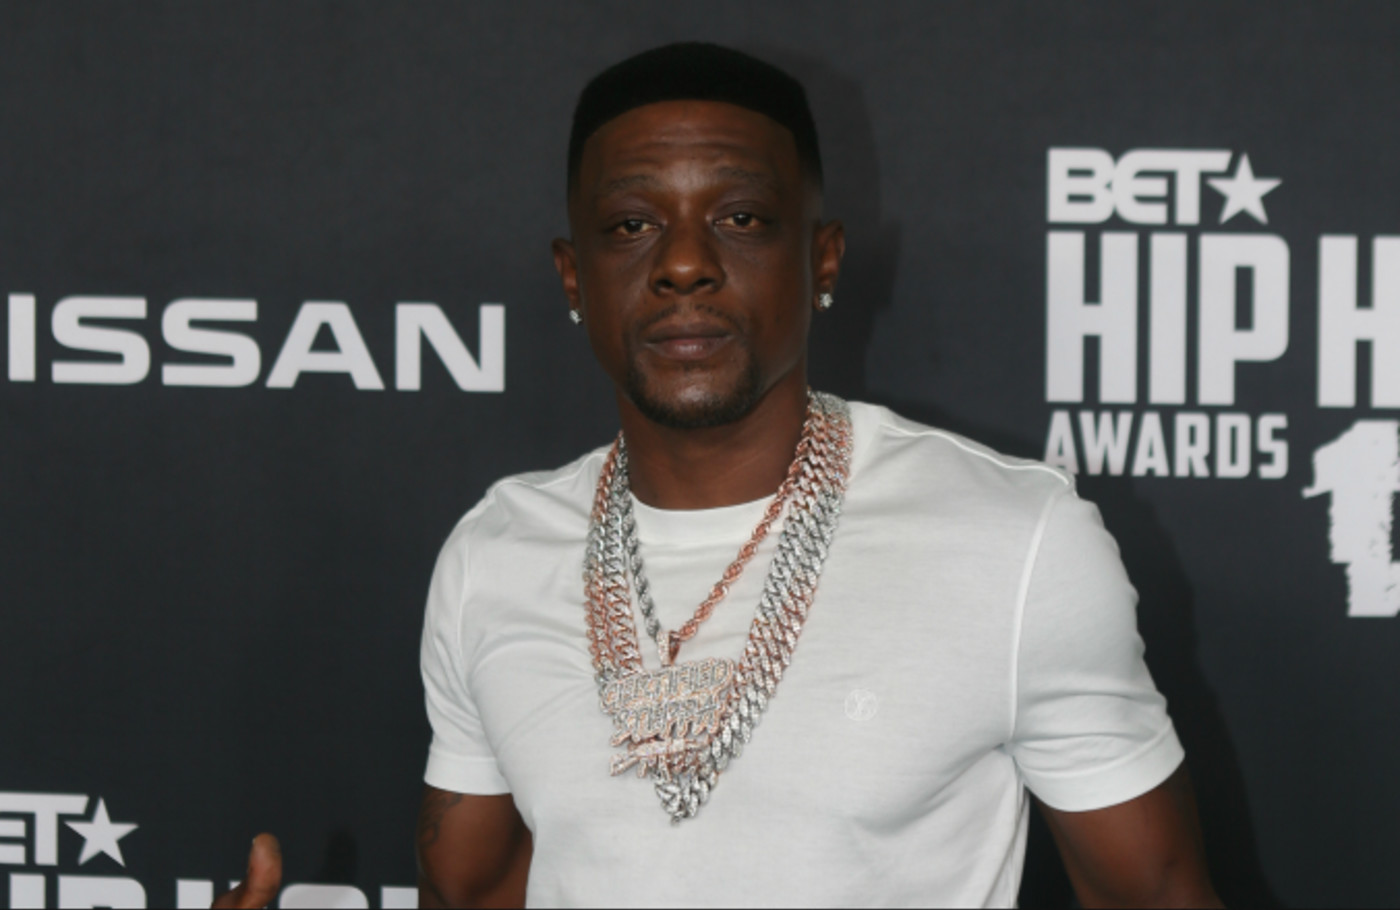 lil Boosie arrives to the 2019 BET Hip Hop Awards